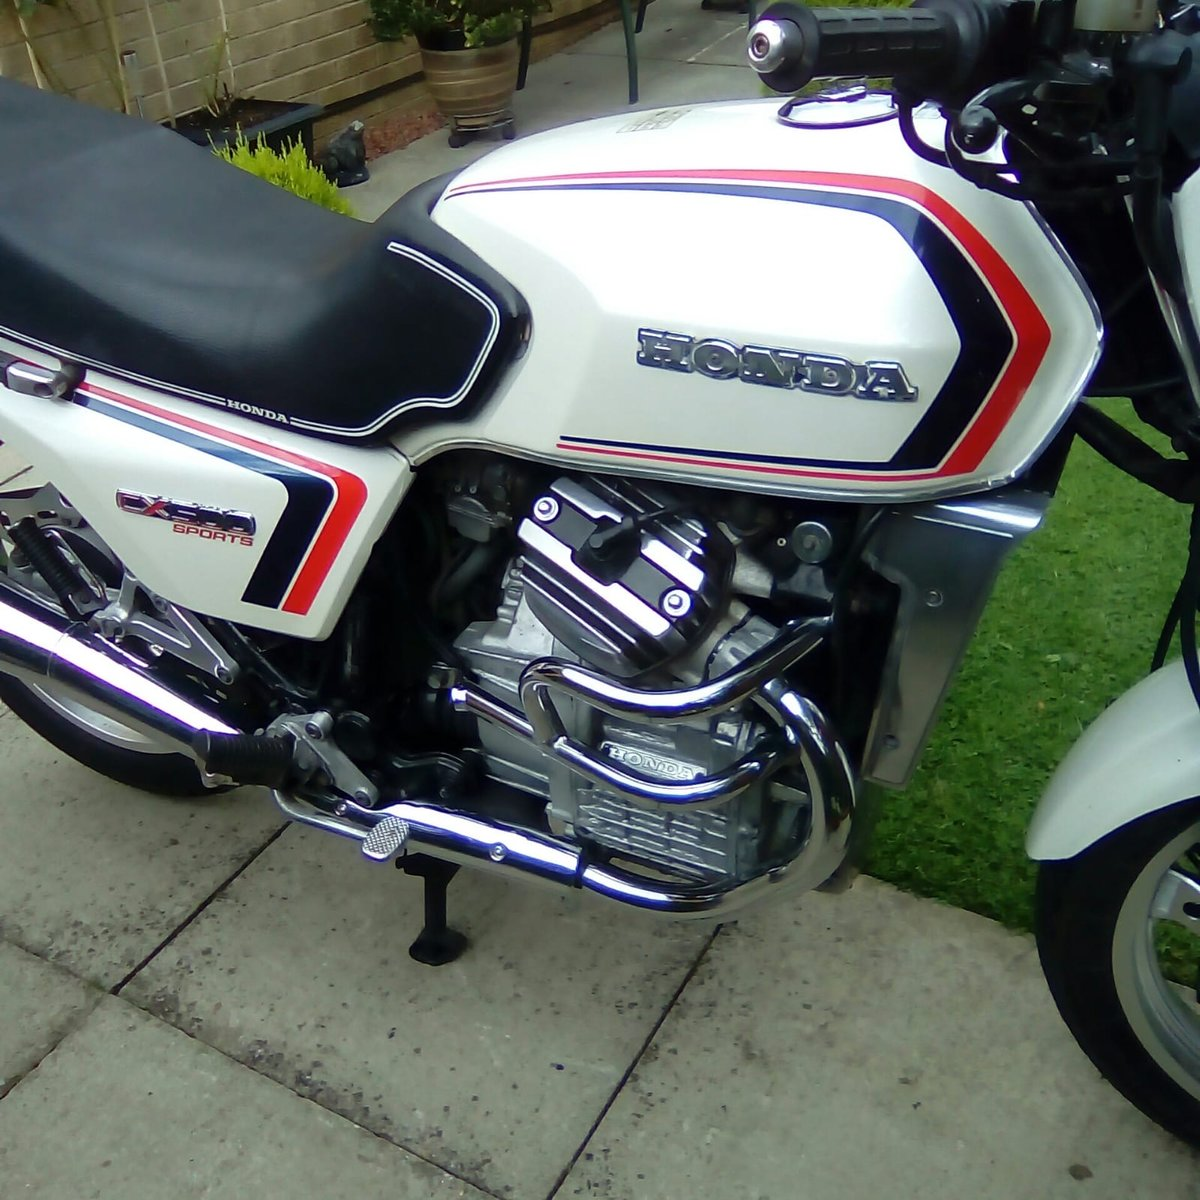 1982 Honda CX500 Eurosport Classic great condition bike SOLD (picture 4 of 6)